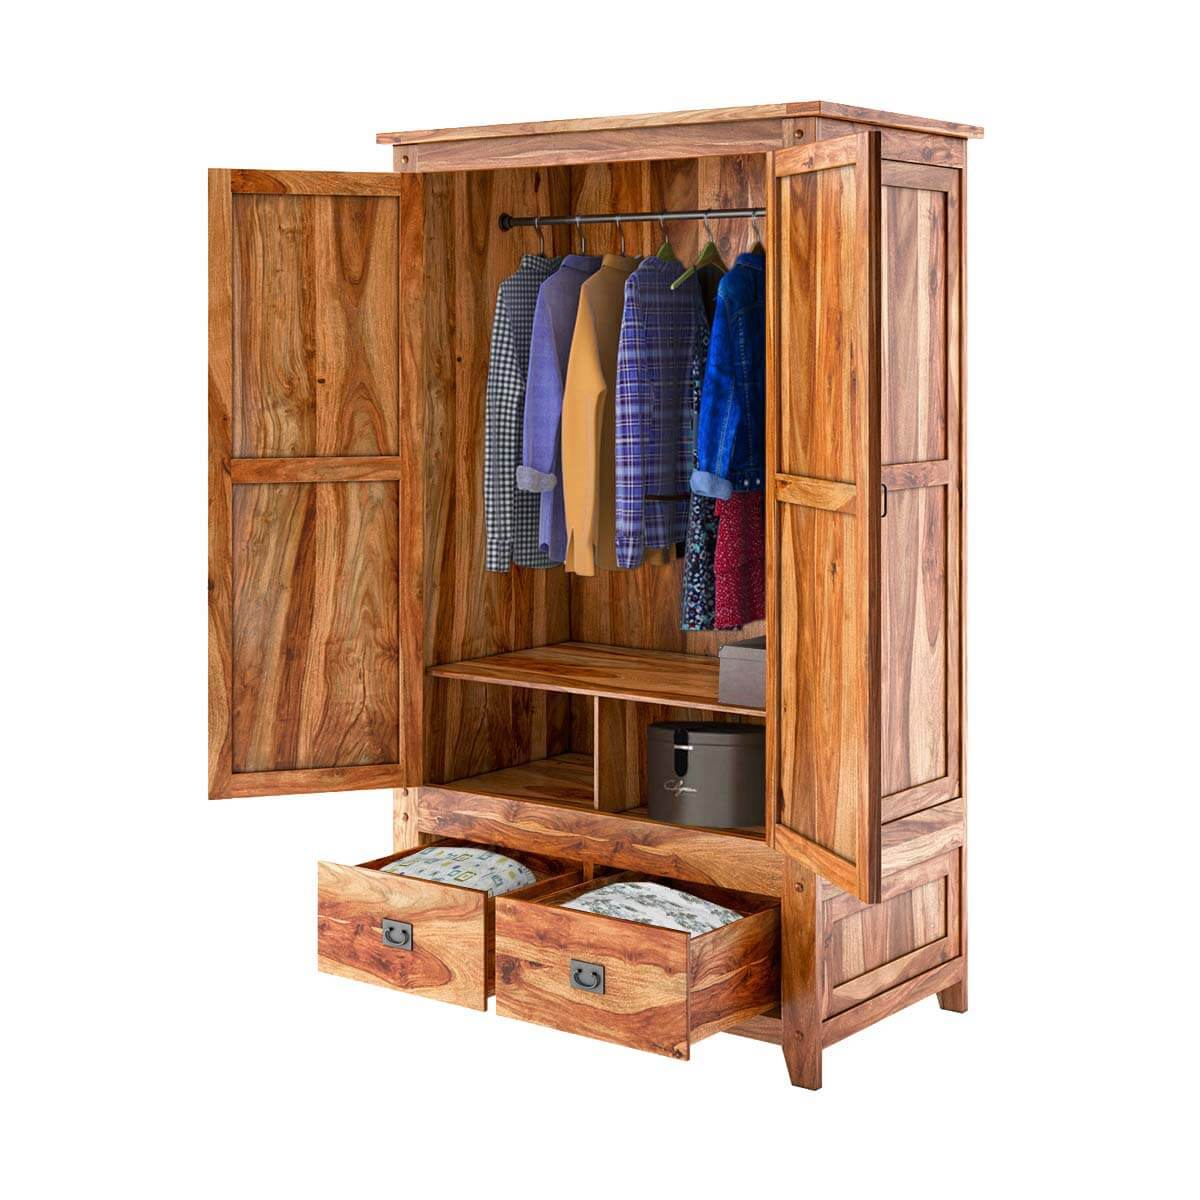 Delaware Solid Hardwood Rustic Bedroom Wardrobe Armoire